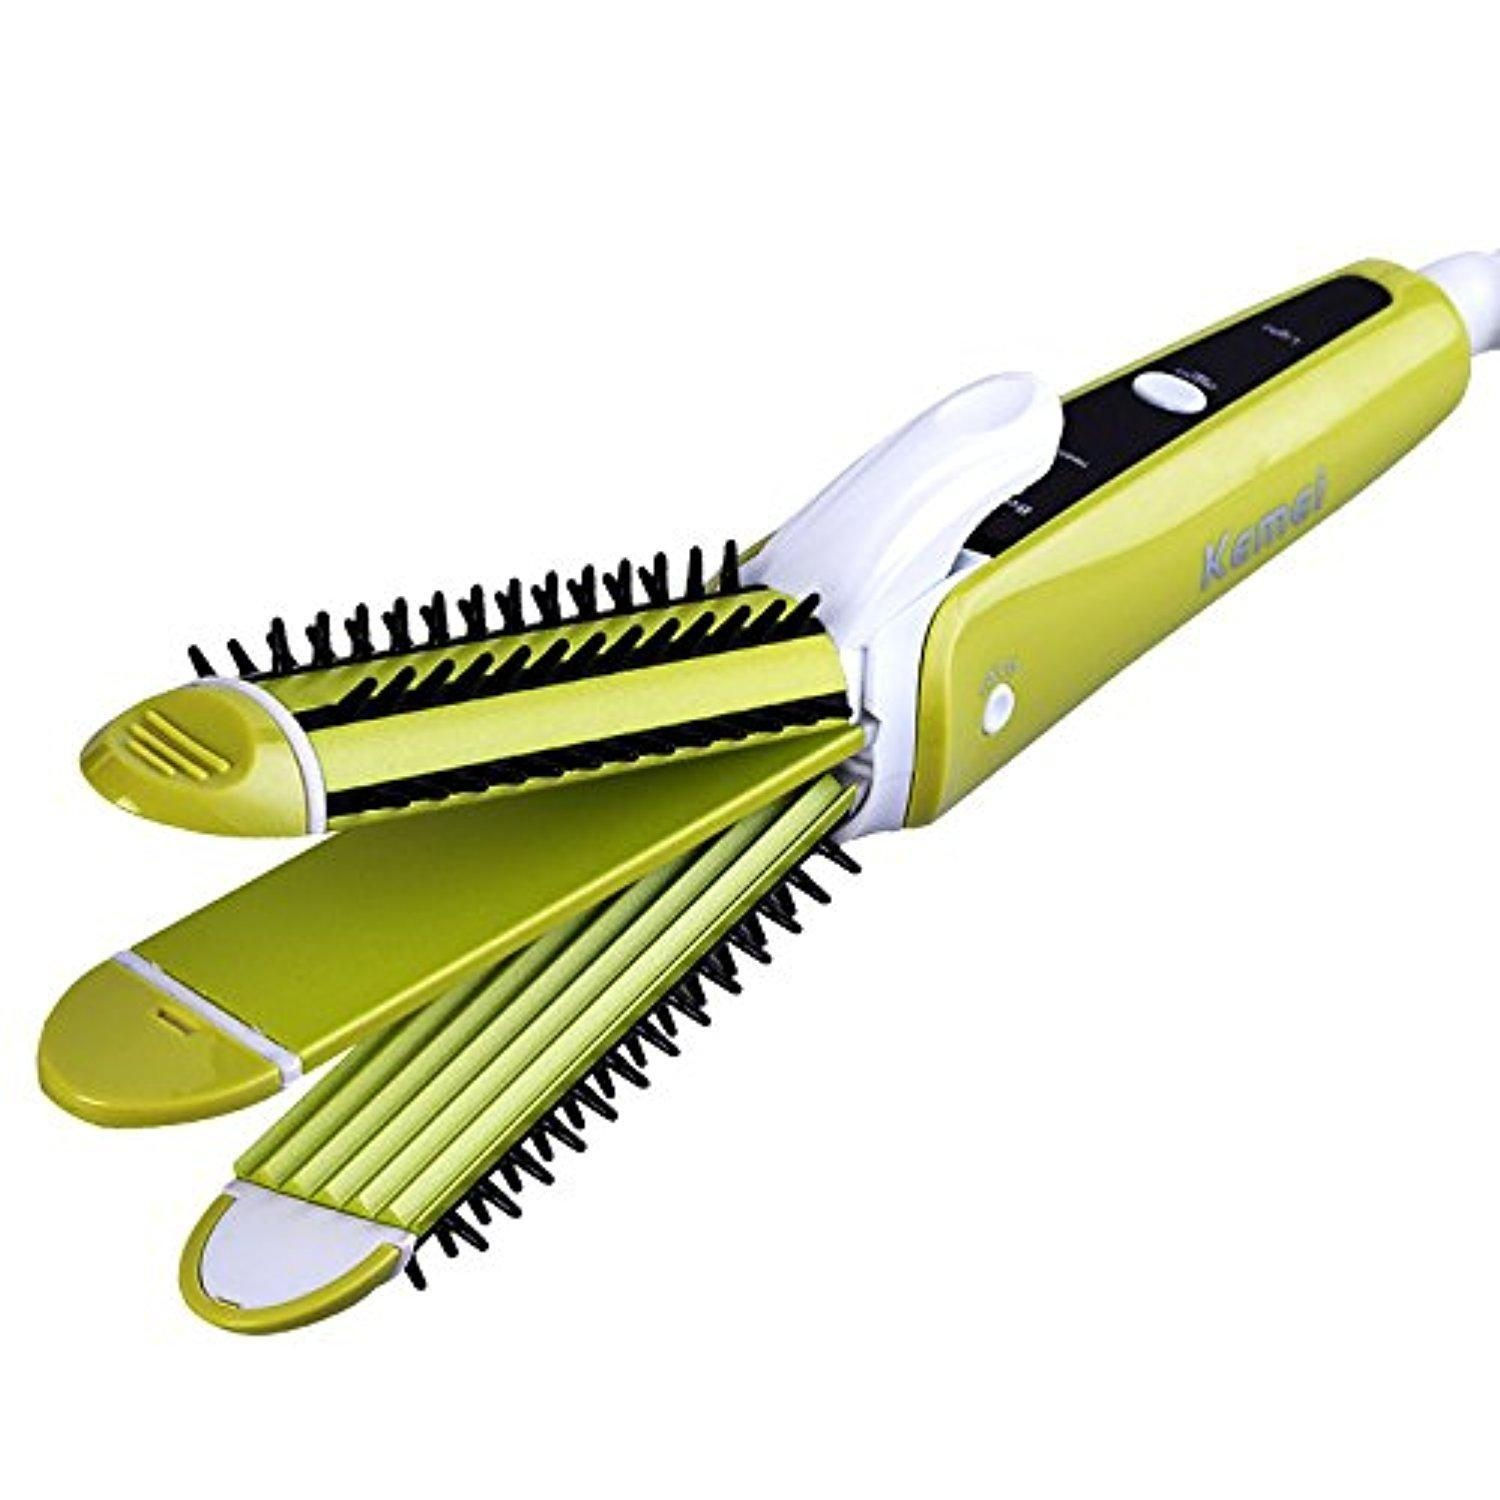 Petbly(TM) Kemei Km-6877 Hair Styling Artifact 3 In 1 Electric Hair Curler Hair Straightener Hair Salon Styling Tools